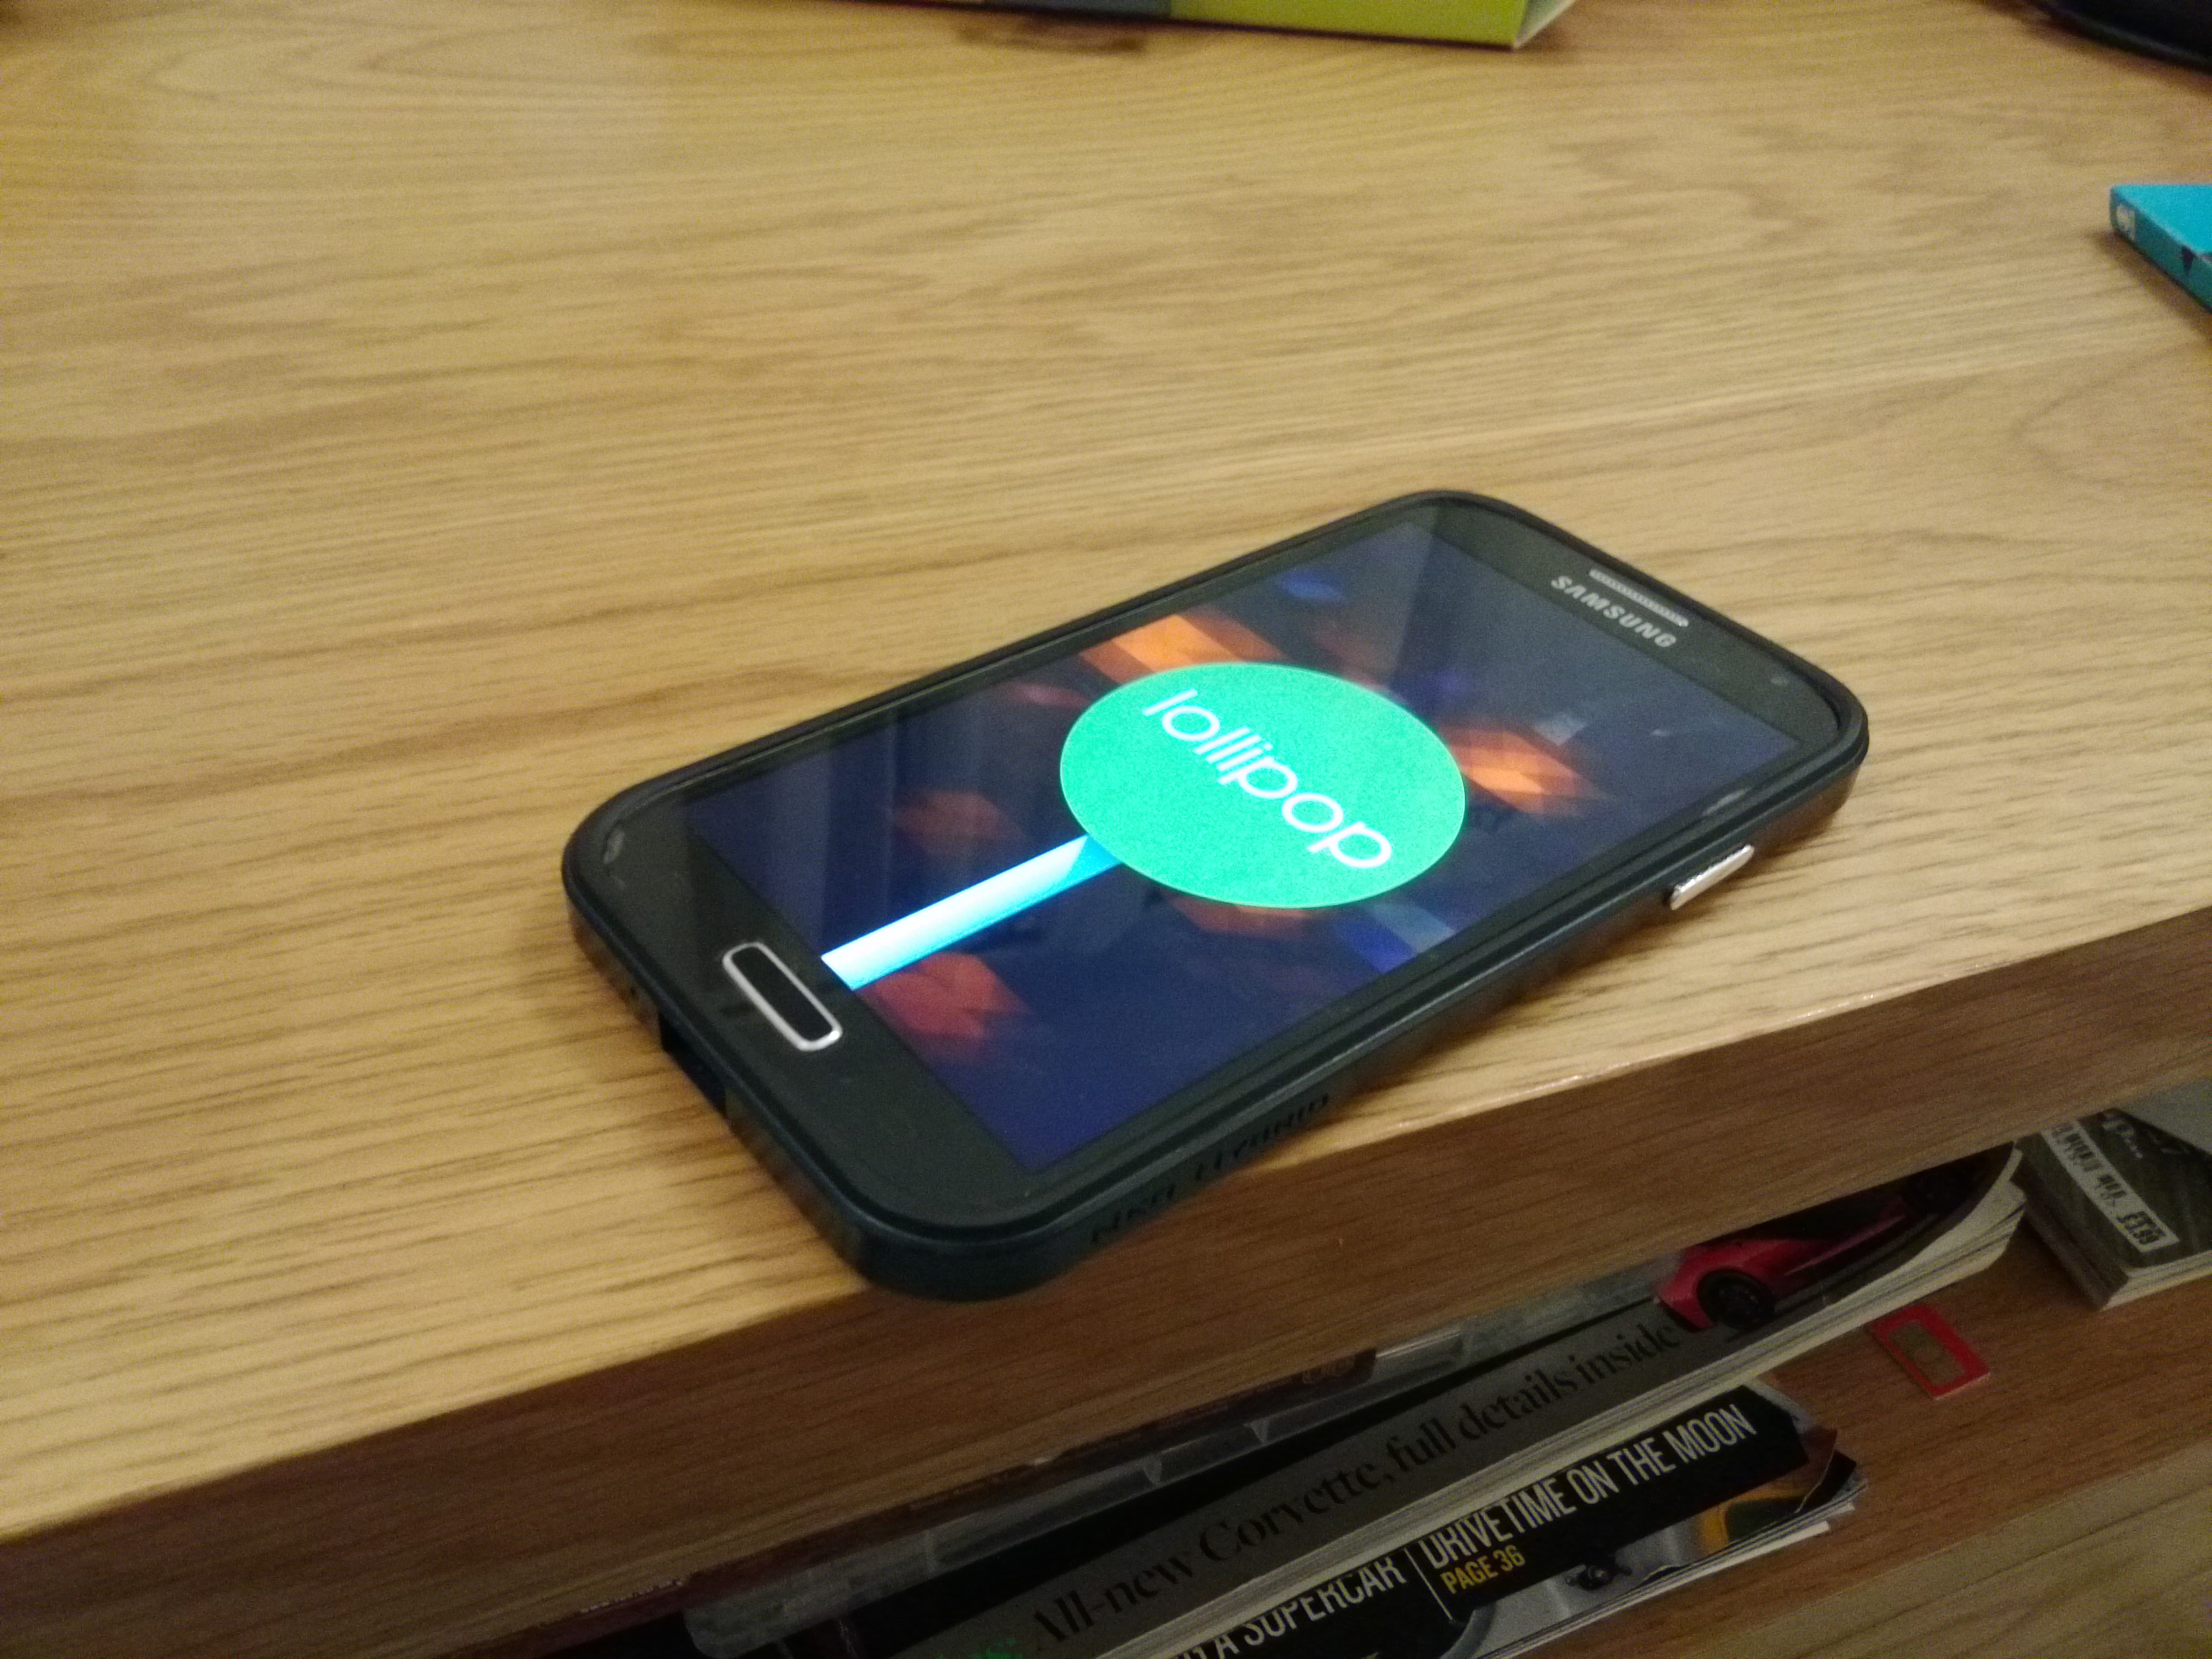 Galaxy S4 Lollipop: What You Need To Know